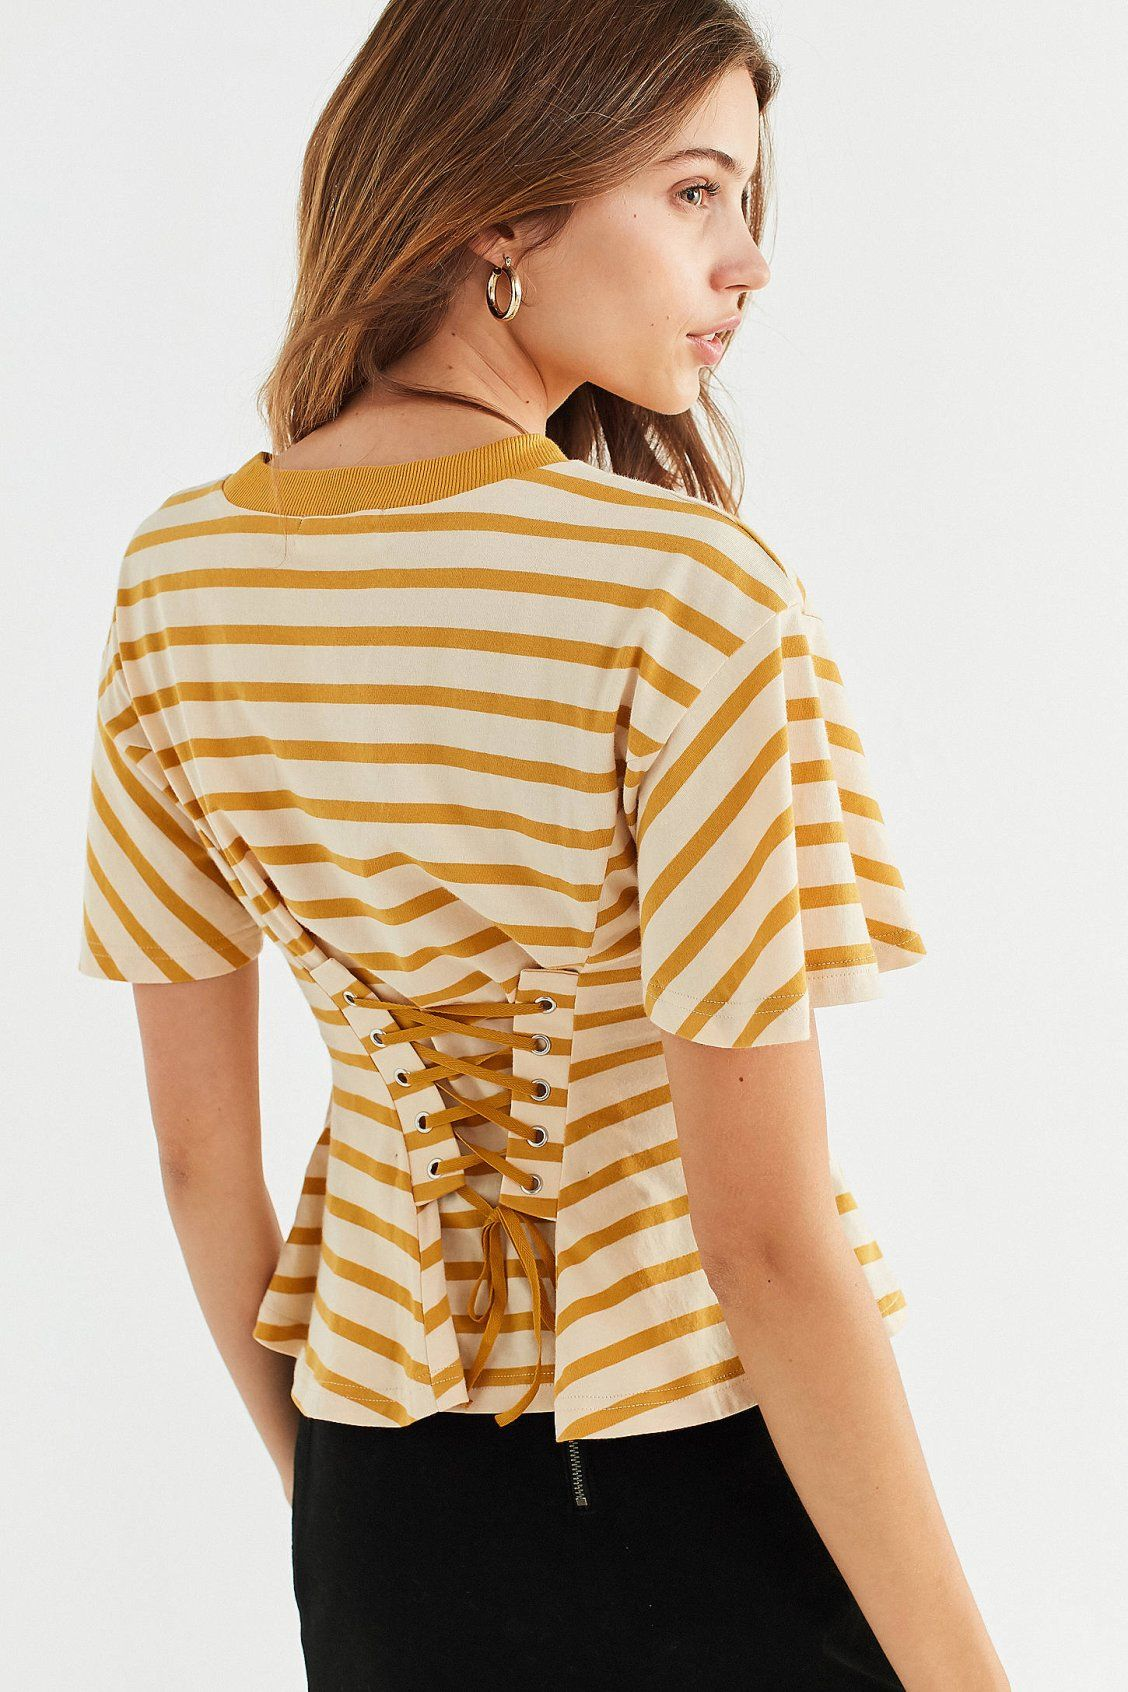 c1789fd87202 Shop UO Millie Lace-Up Corset Tee at Urban Outfitters today. We carry all  the latest styles